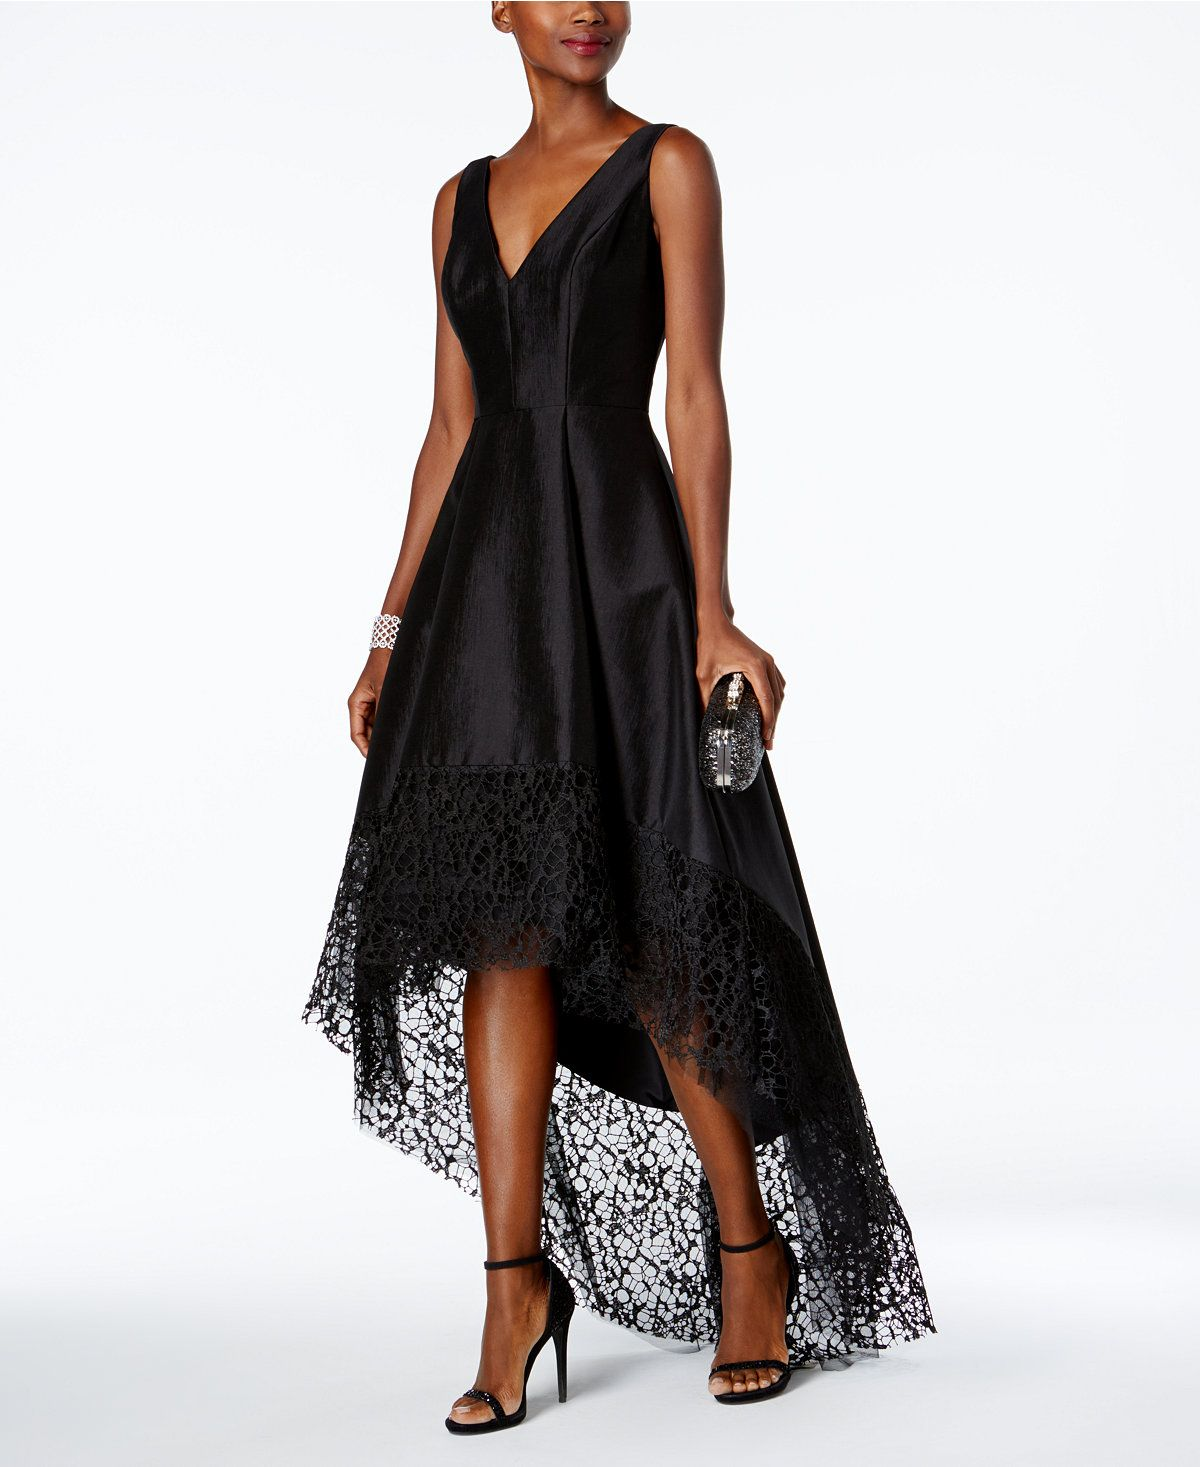 896e251fcd90 Betsy & Adam Lace-Trim High-Low Gown - Dresses - Women - Macy's ...